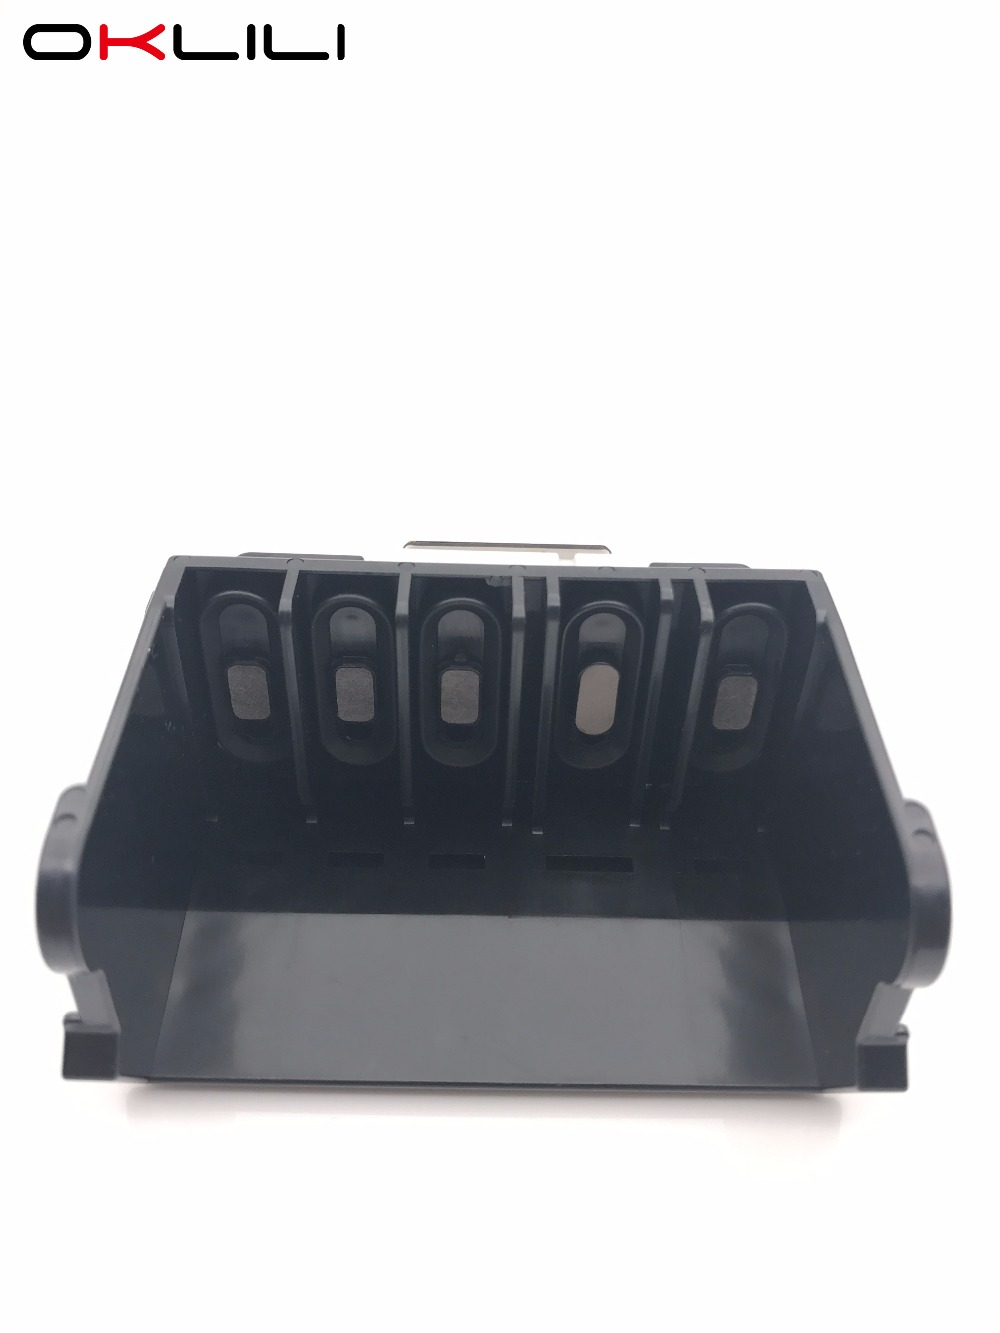 OKLILI ORIGINAL QY6-0066 QY6-0066-000 Printhead Print Head Printer Head for Canon MX7600 iX7000 high quality original print head qy6 0057 printhead compatible for canon ip5000 ip5000r printer head